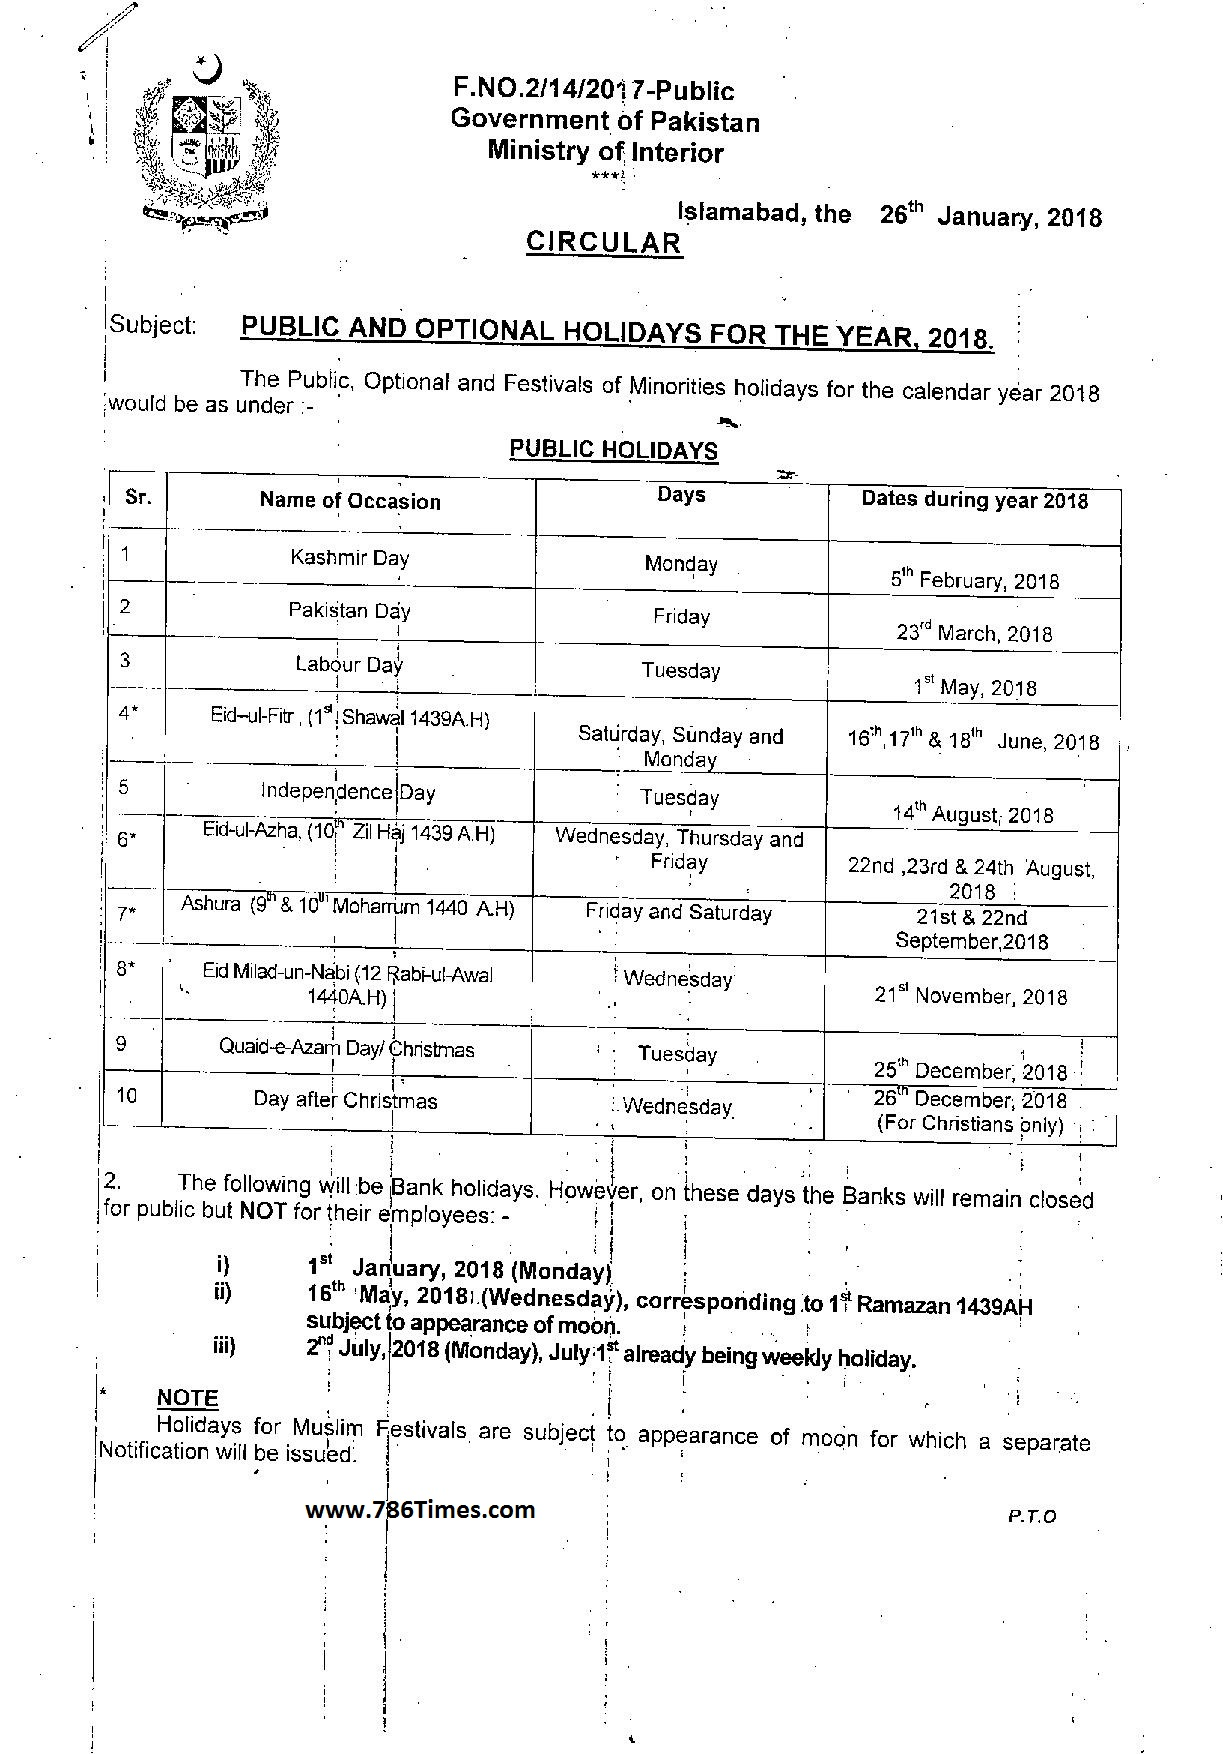 Government announced public and optional holidays in 2018 page 1